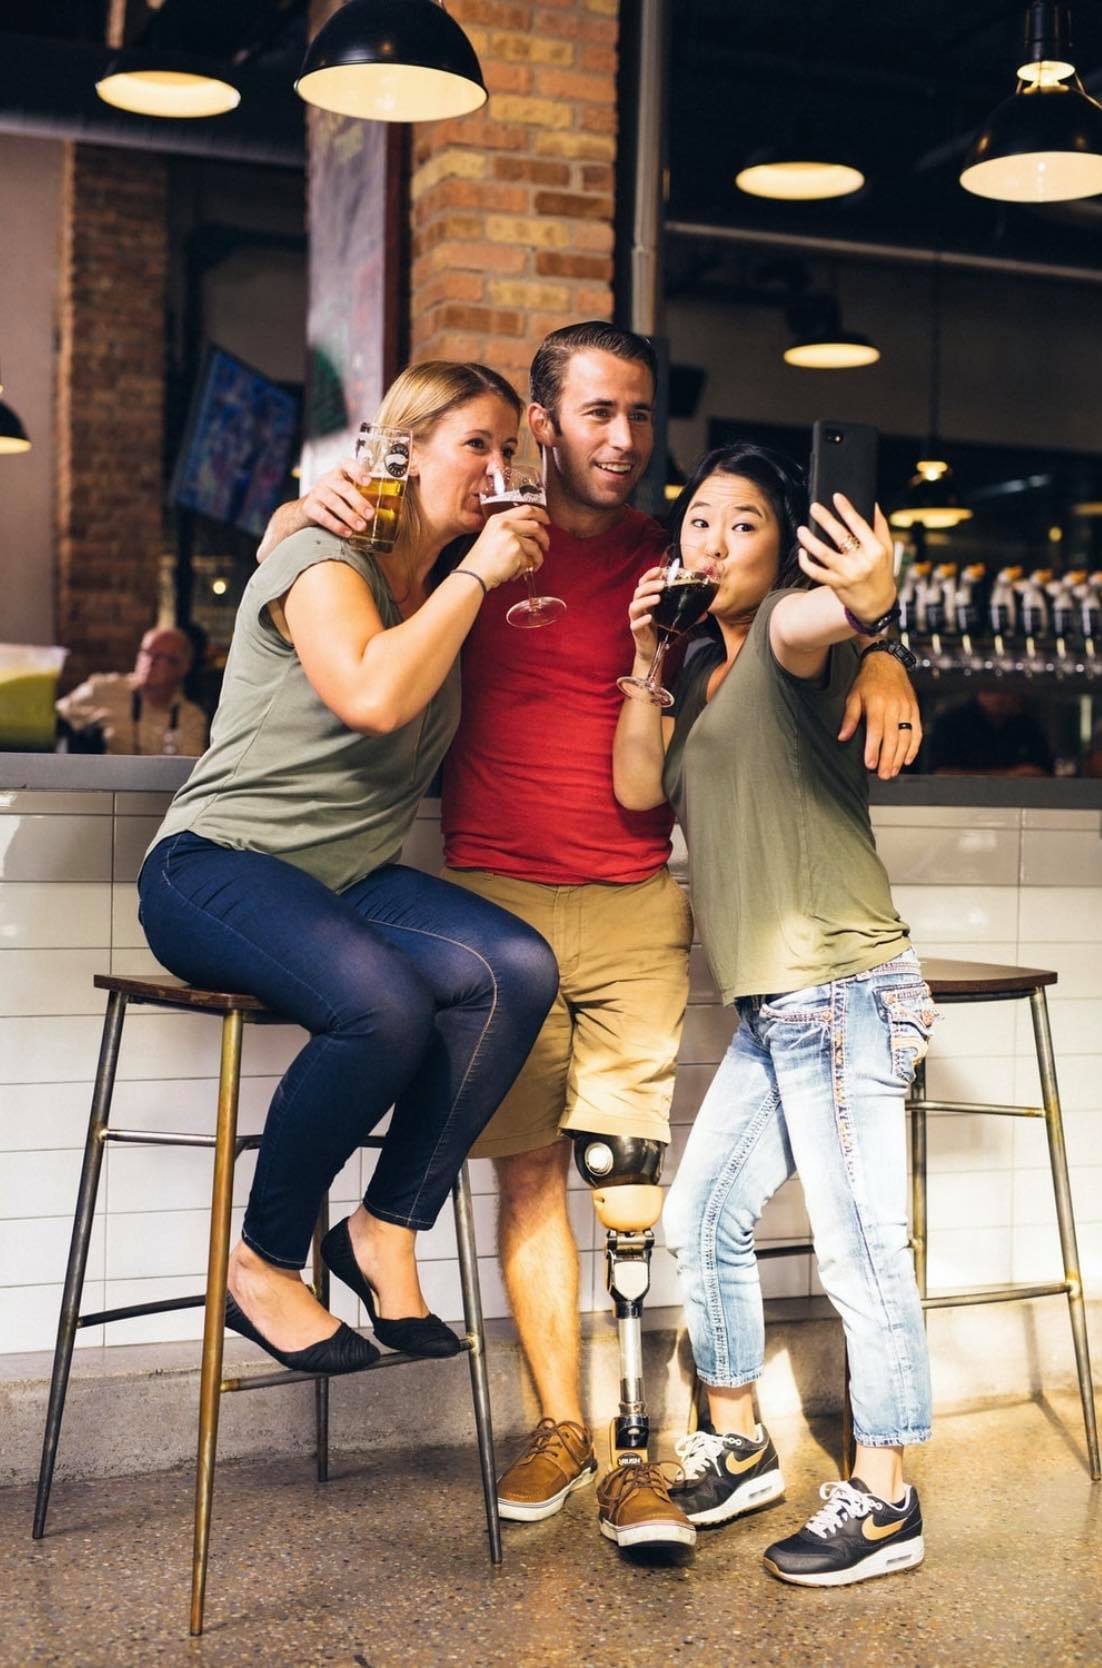 Image appears to be of three people in a bar taking a group selfie. There is a man standing in the middle holding his drink, arms around the shoulders loosely of the two woman and he has a prosthetic leg. The woman on the left leans in posing with her drink up and the woman on the right leans into him pretending to drink and taking the photo with a phone.